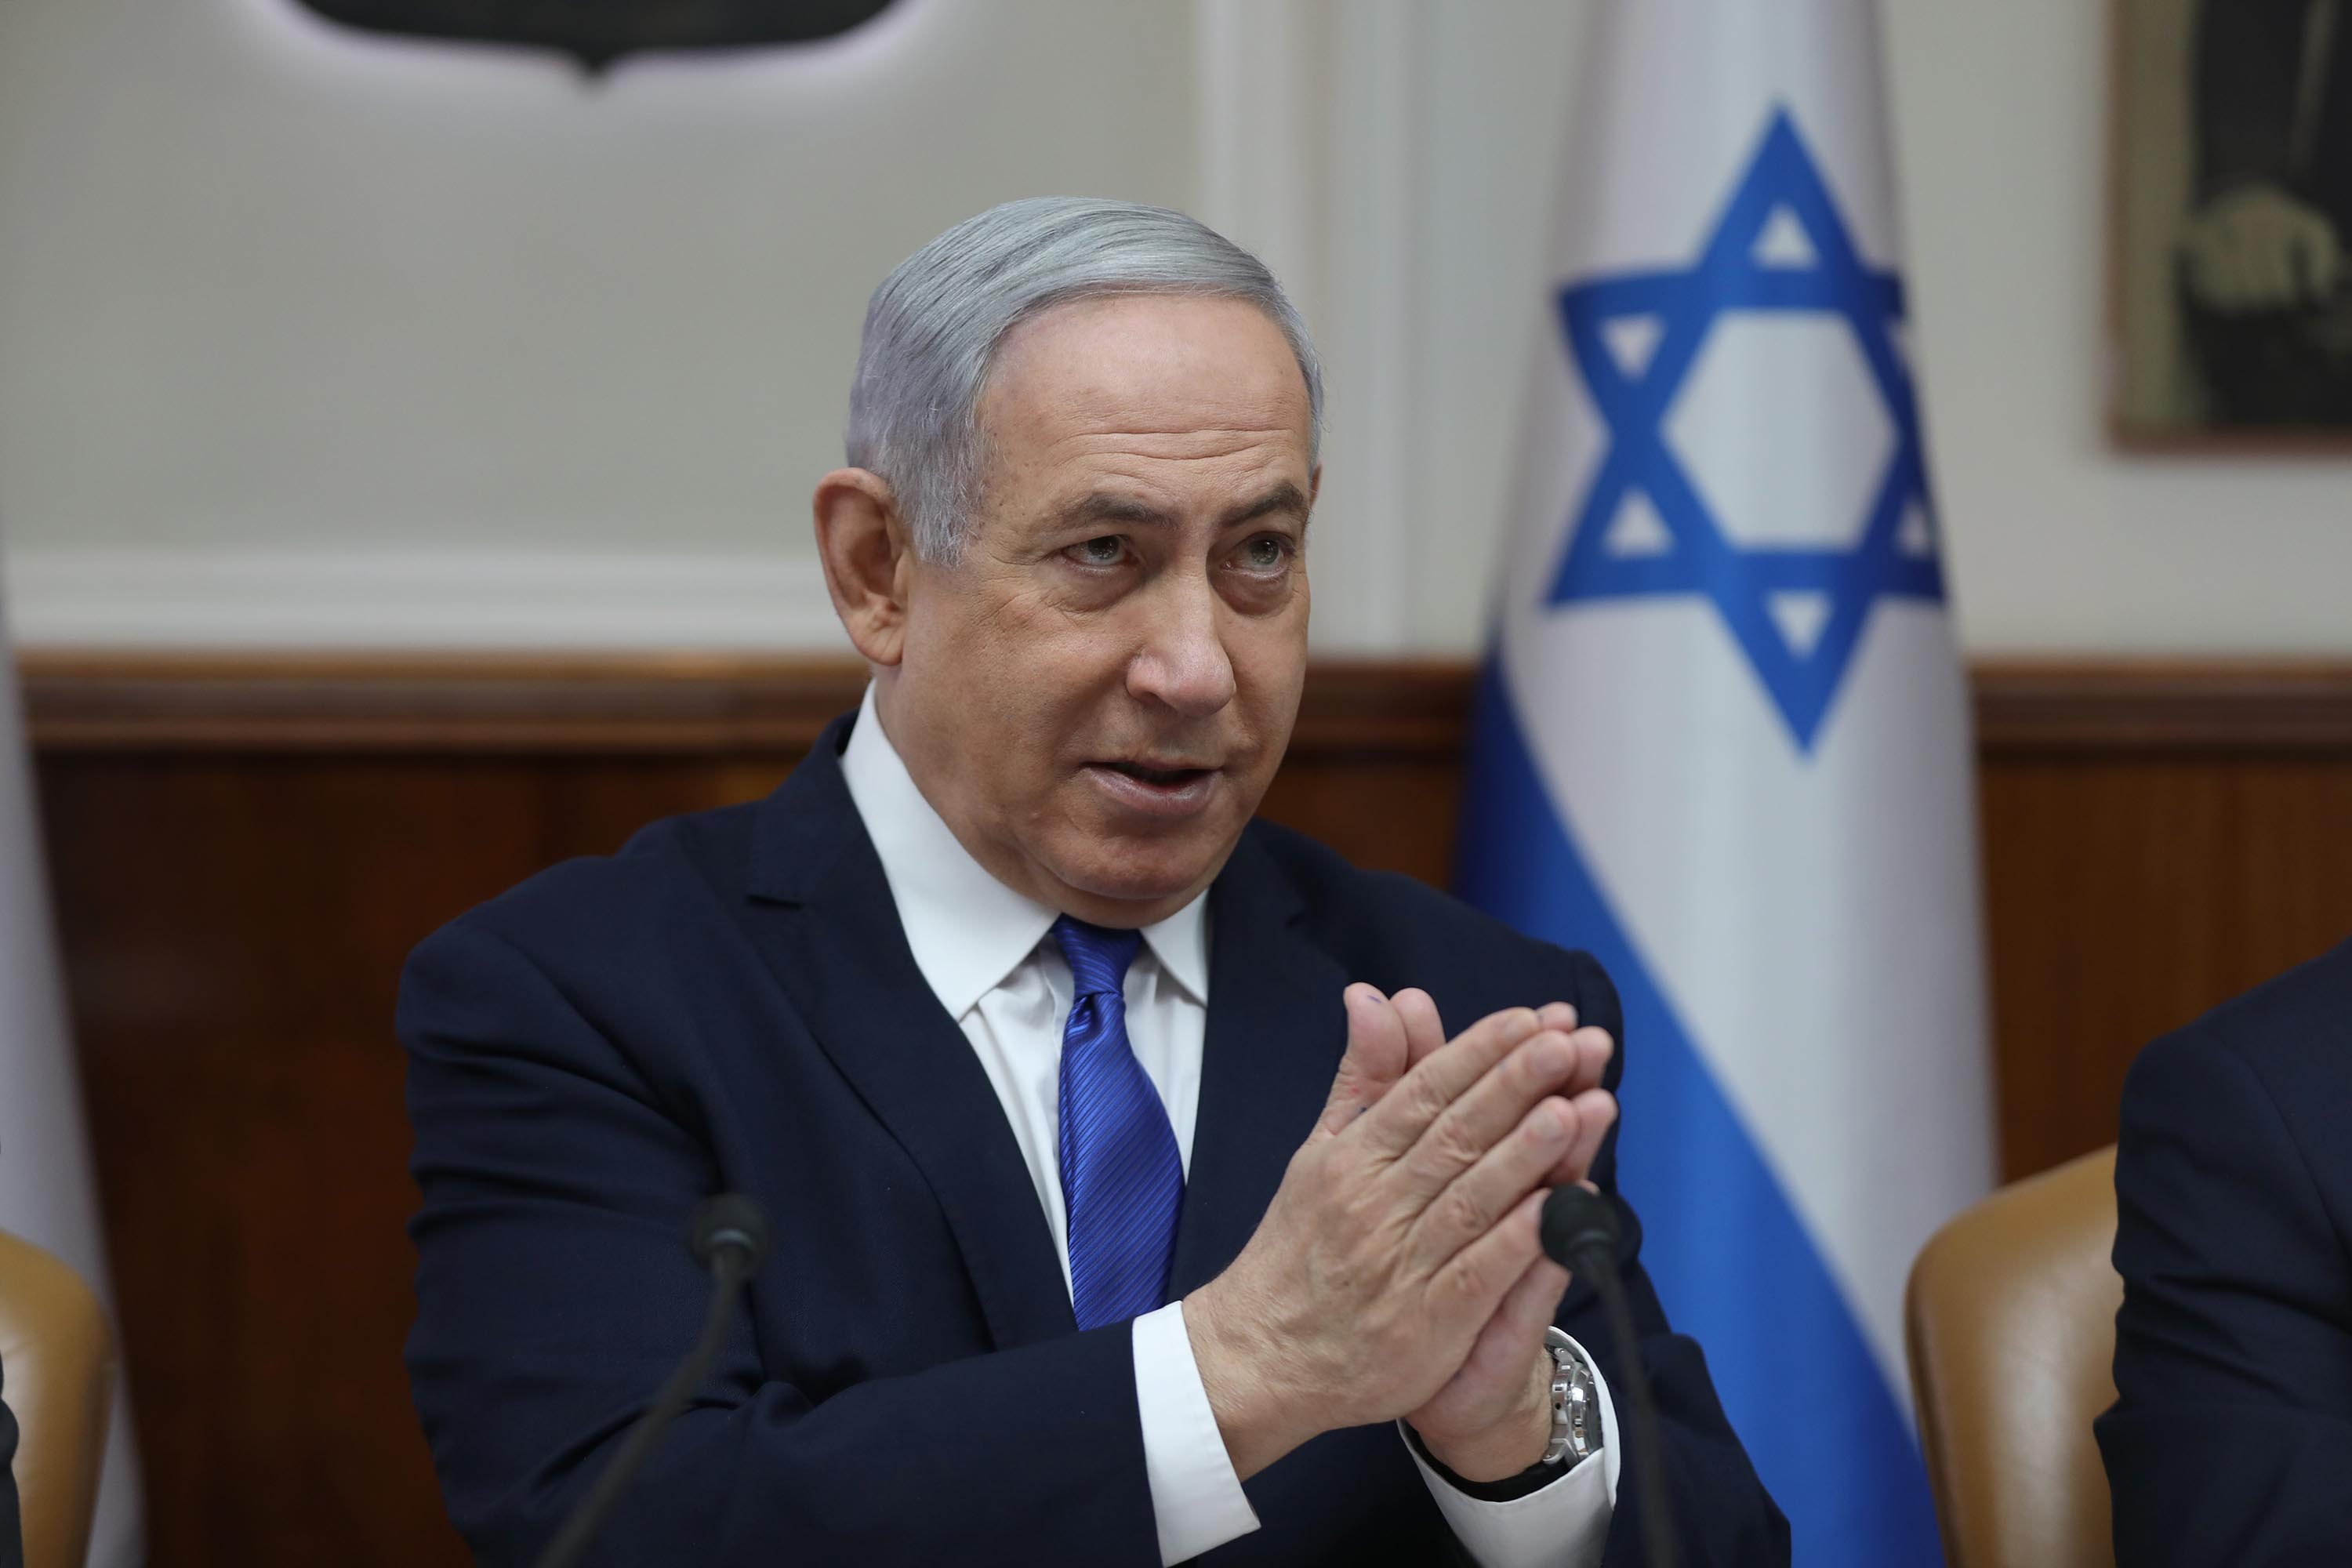 Israeli Prime Minister Benjamin Netanyahu speaks during a weekly cabinet meeting in Jerusalem, on December 29. Credit: Abir Sultan/Pool/AFP via Getty Images.